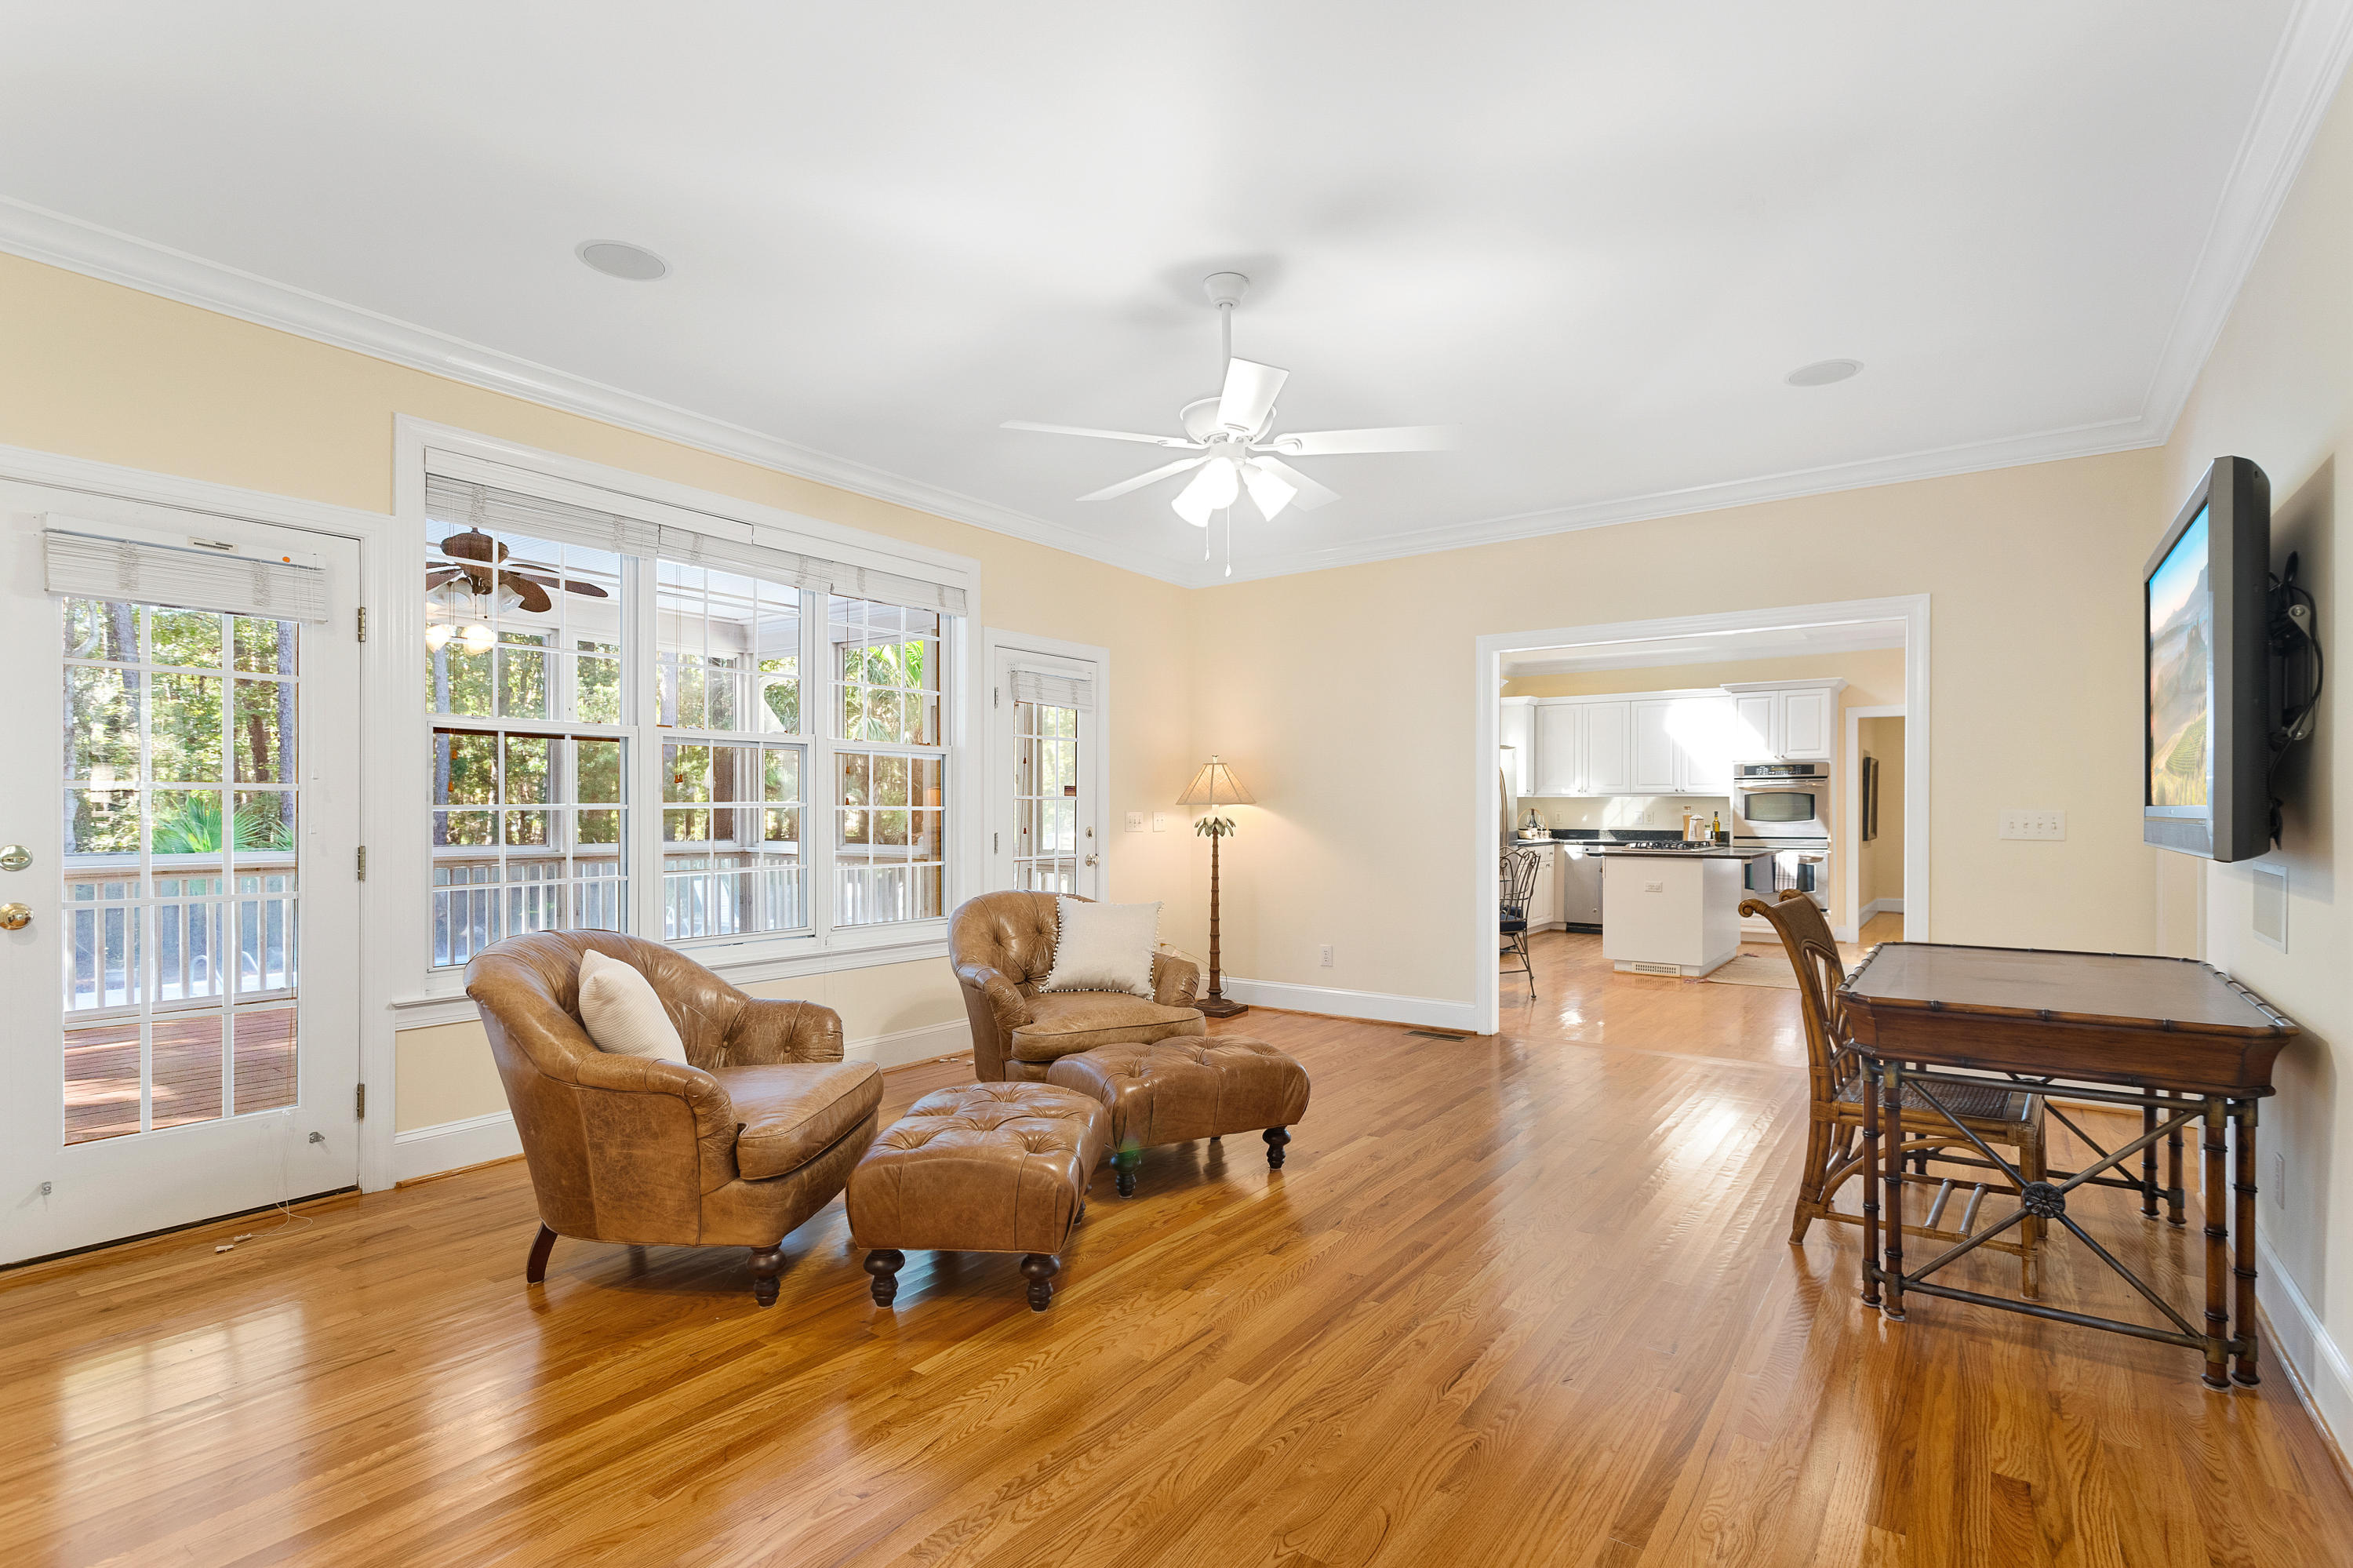 Dunes West Homes For Sale - 1842 Shell Ring, Mount Pleasant, SC - 11